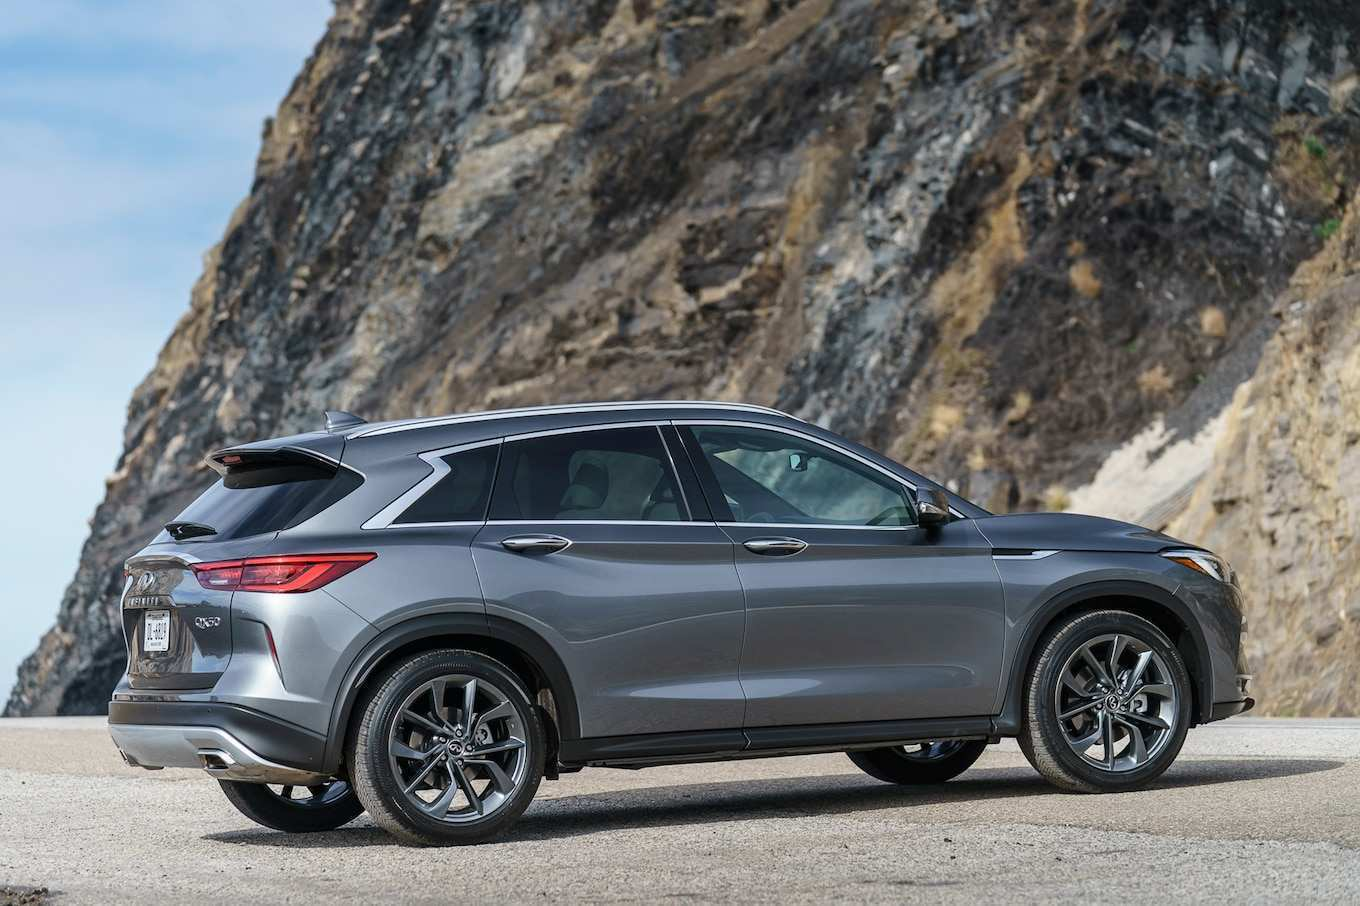 41 All New 2019 Infiniti Qx50 Weight Performance And New Engine